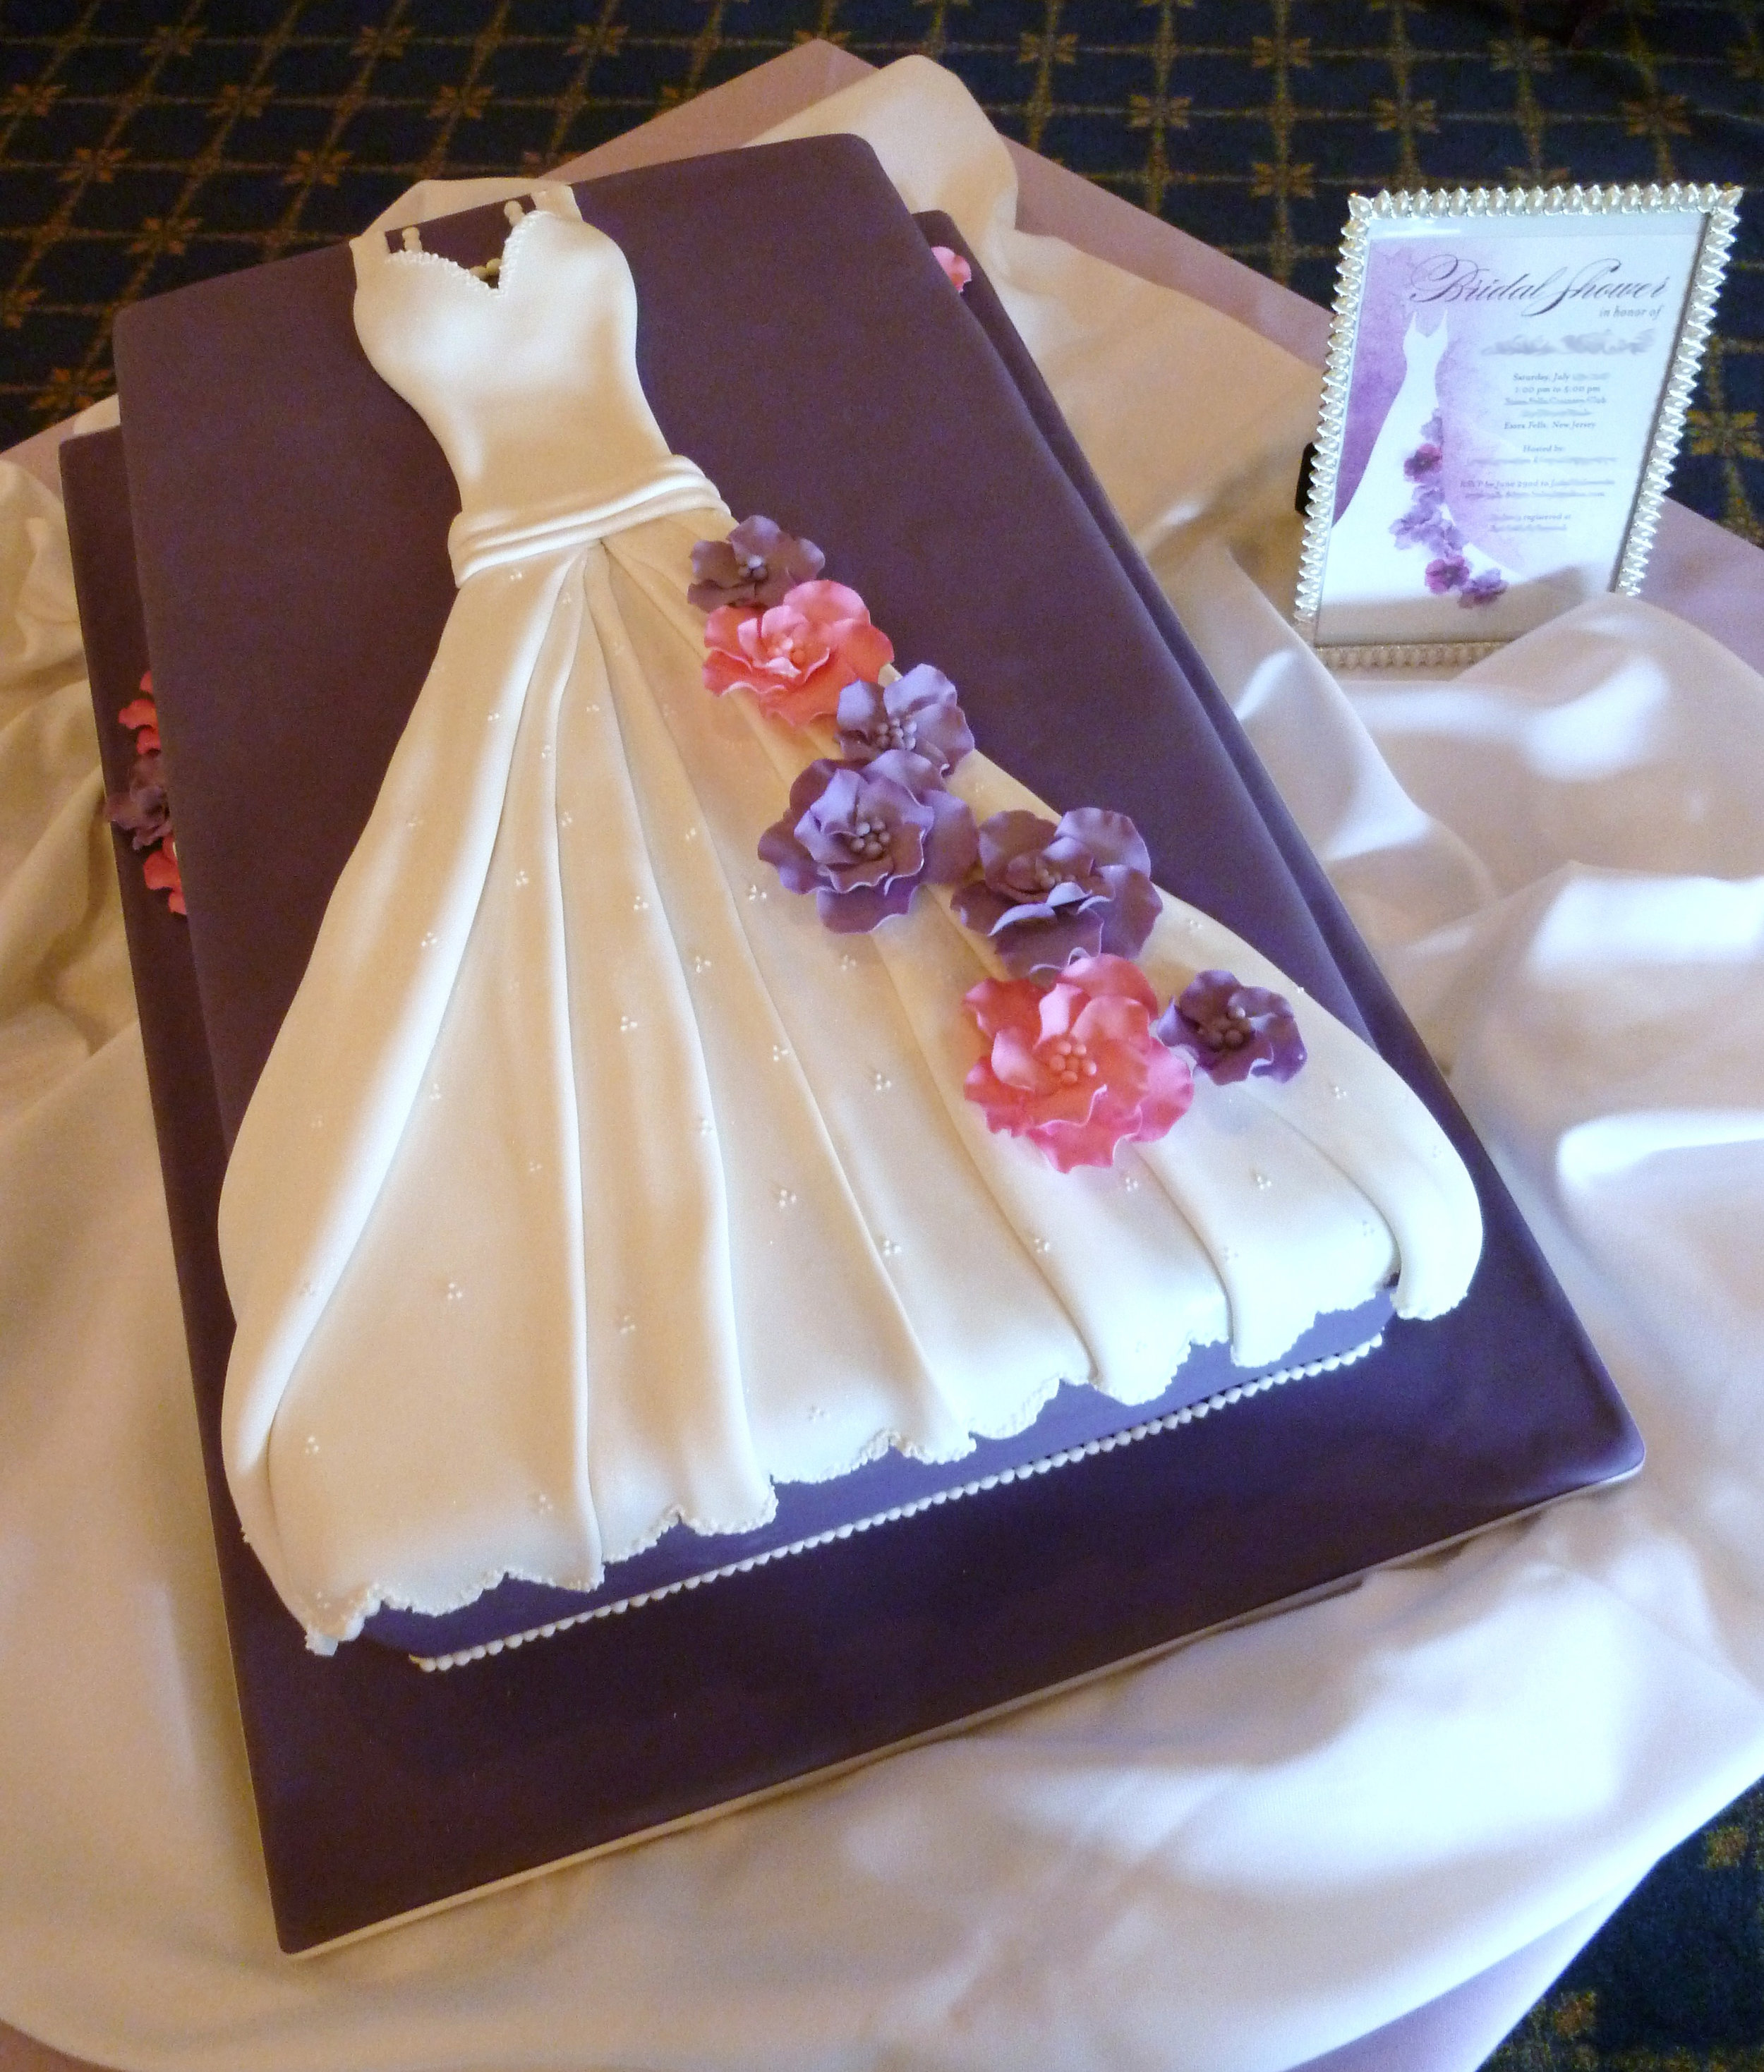 Bridal shower wedding-dress cake